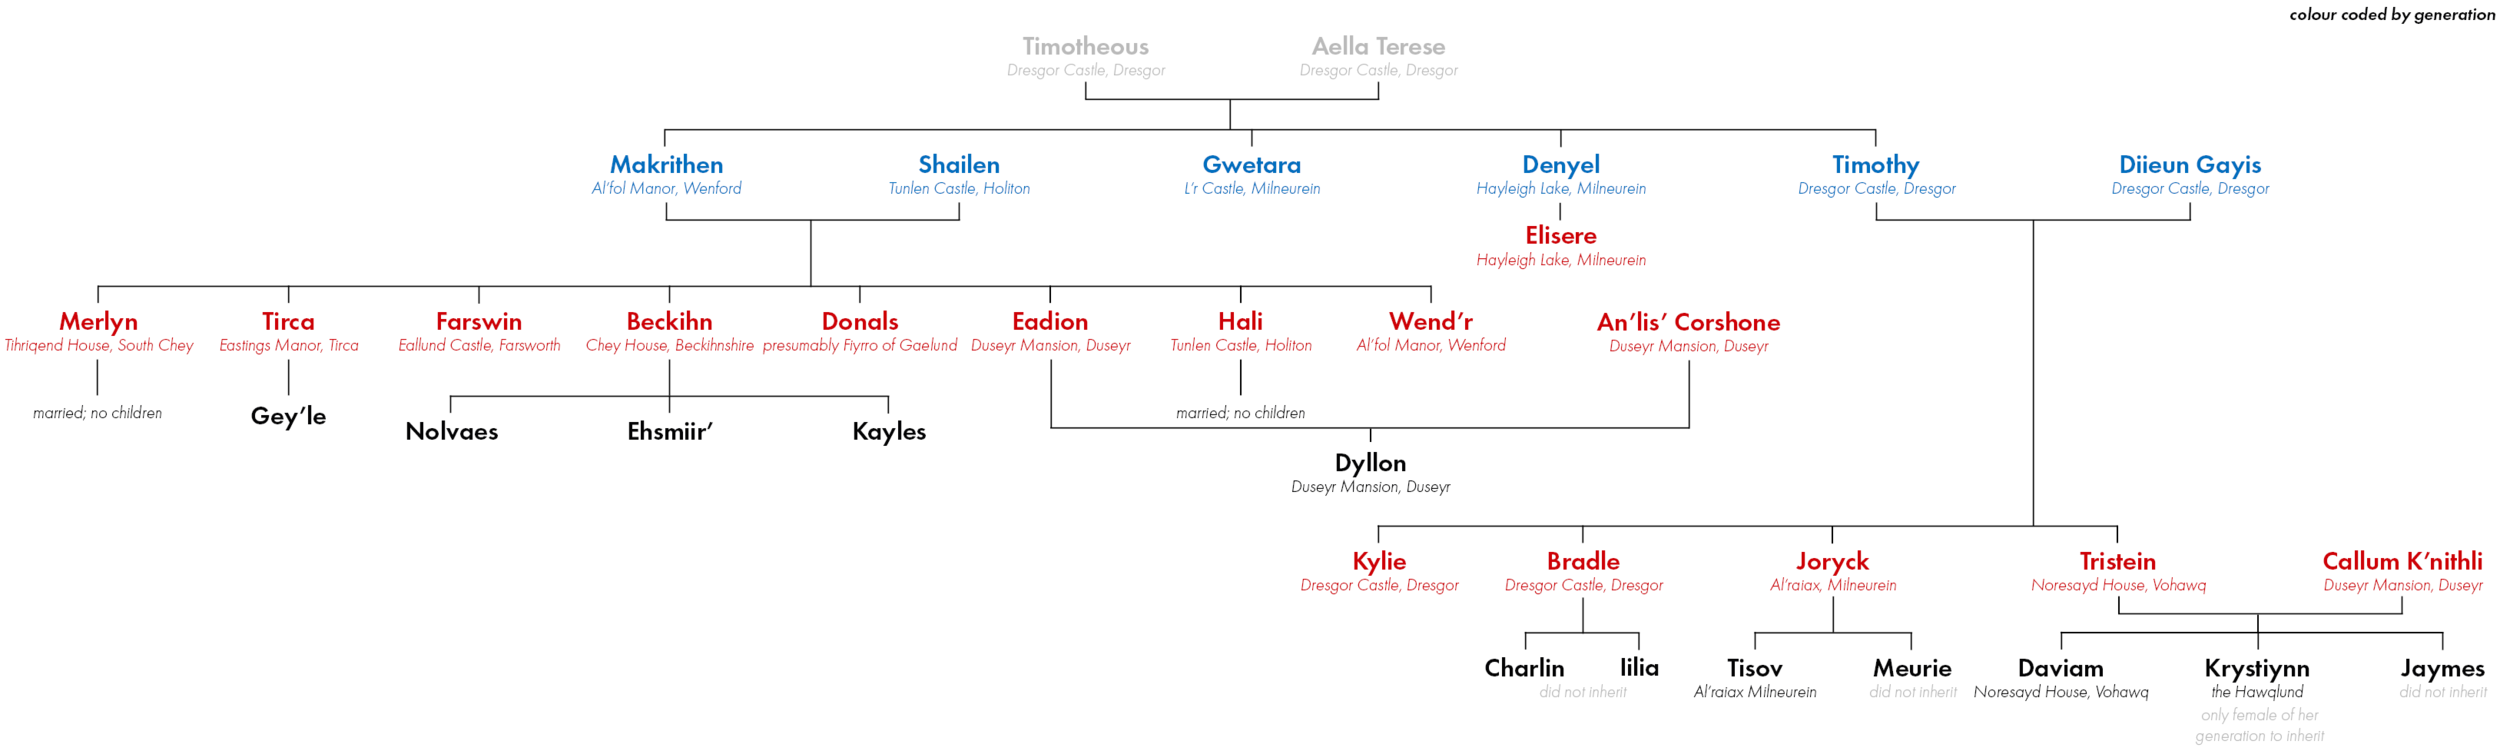 The Lineage of Timotheous Nalchios and their known residences prior to the Acquisition (click to enlarge)